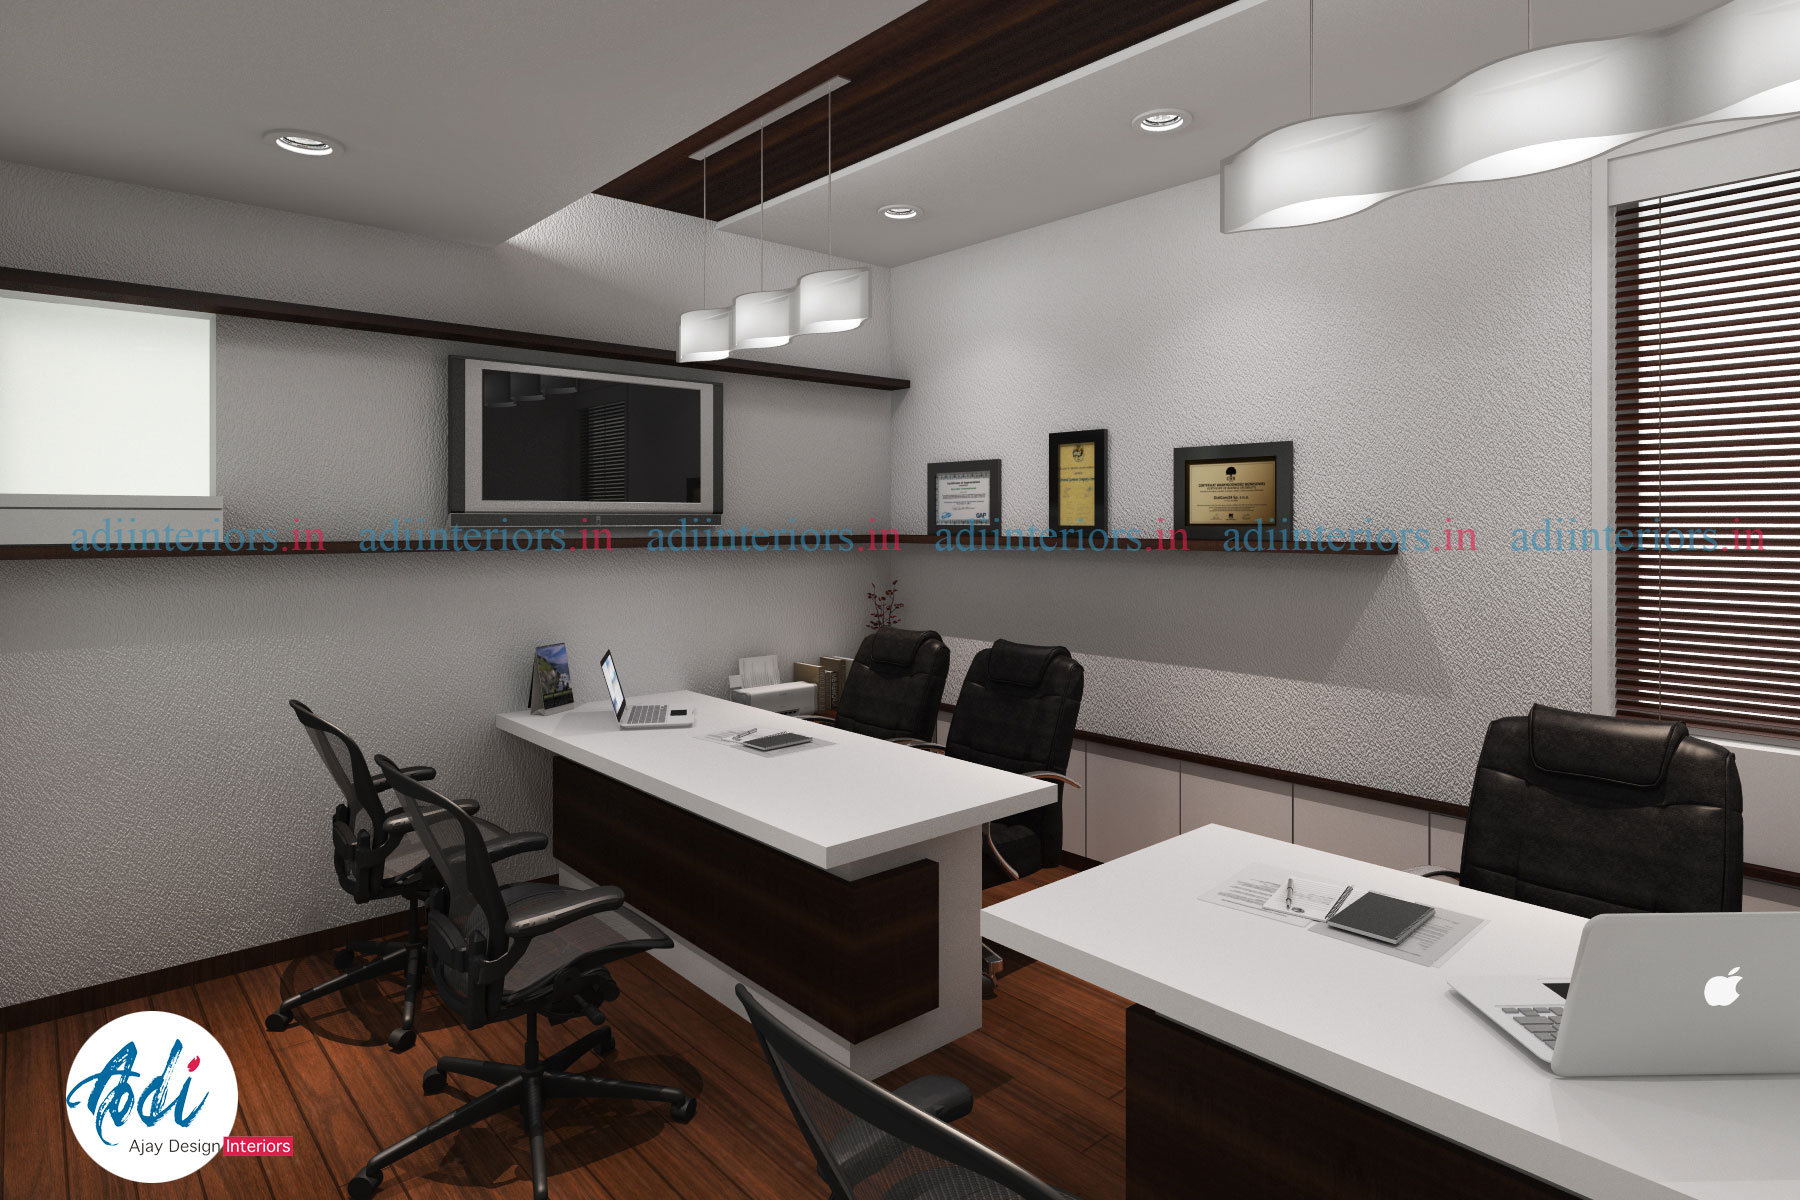 An Office Design By Ajay Design Interiors